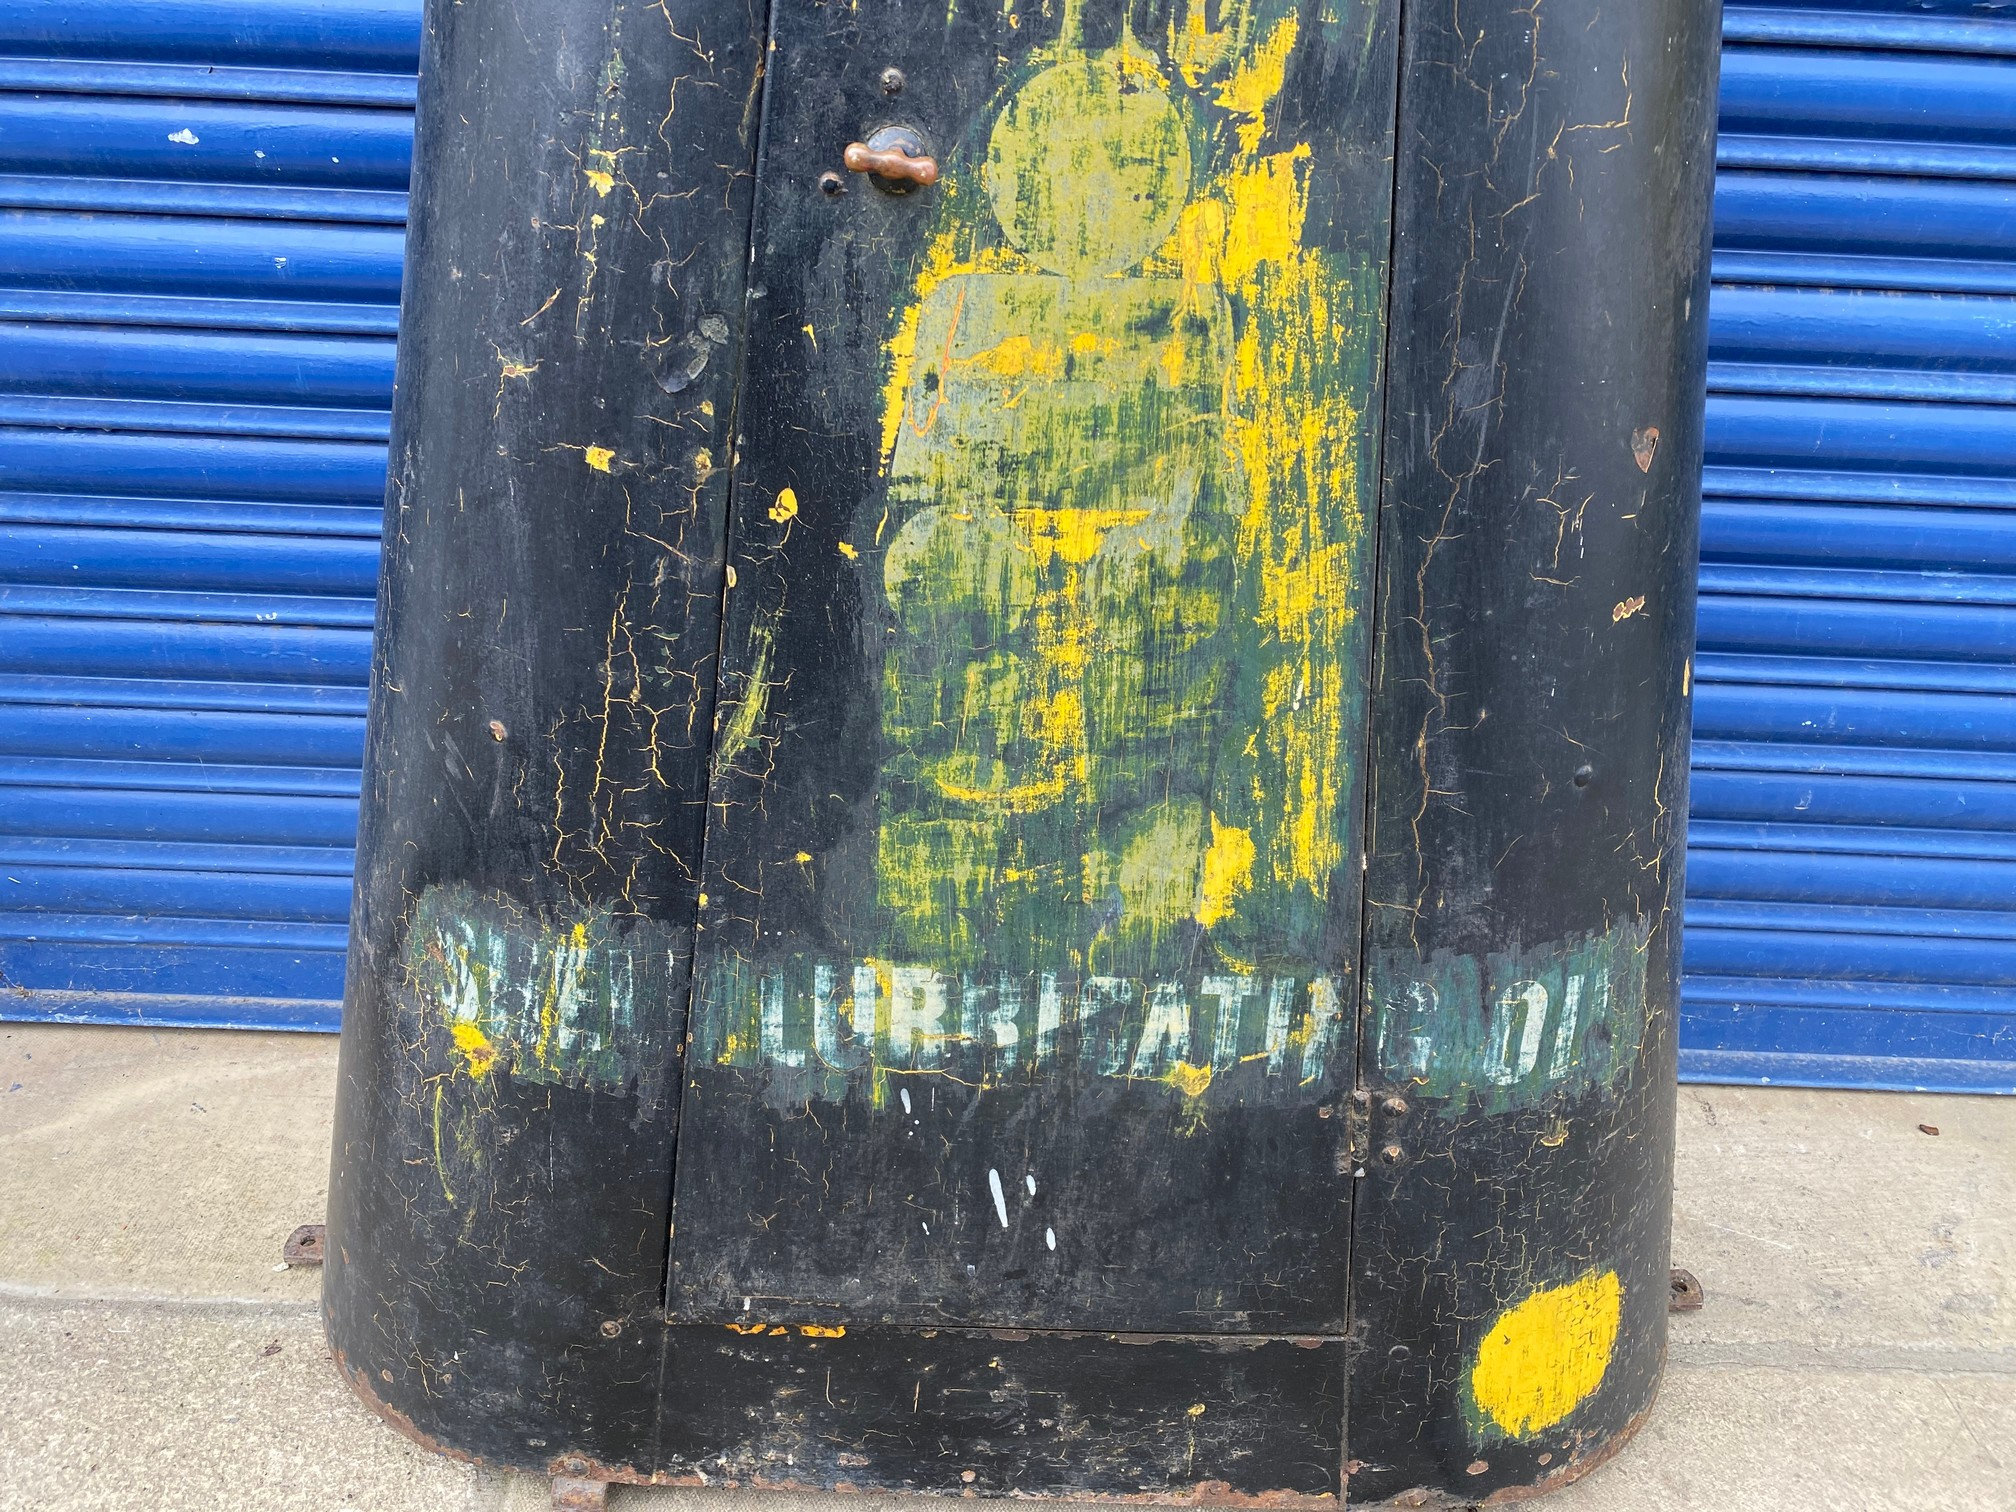 A very rare Shell lubrication 'robot/stick man' forecourt cabinet. - Image 3 of 7